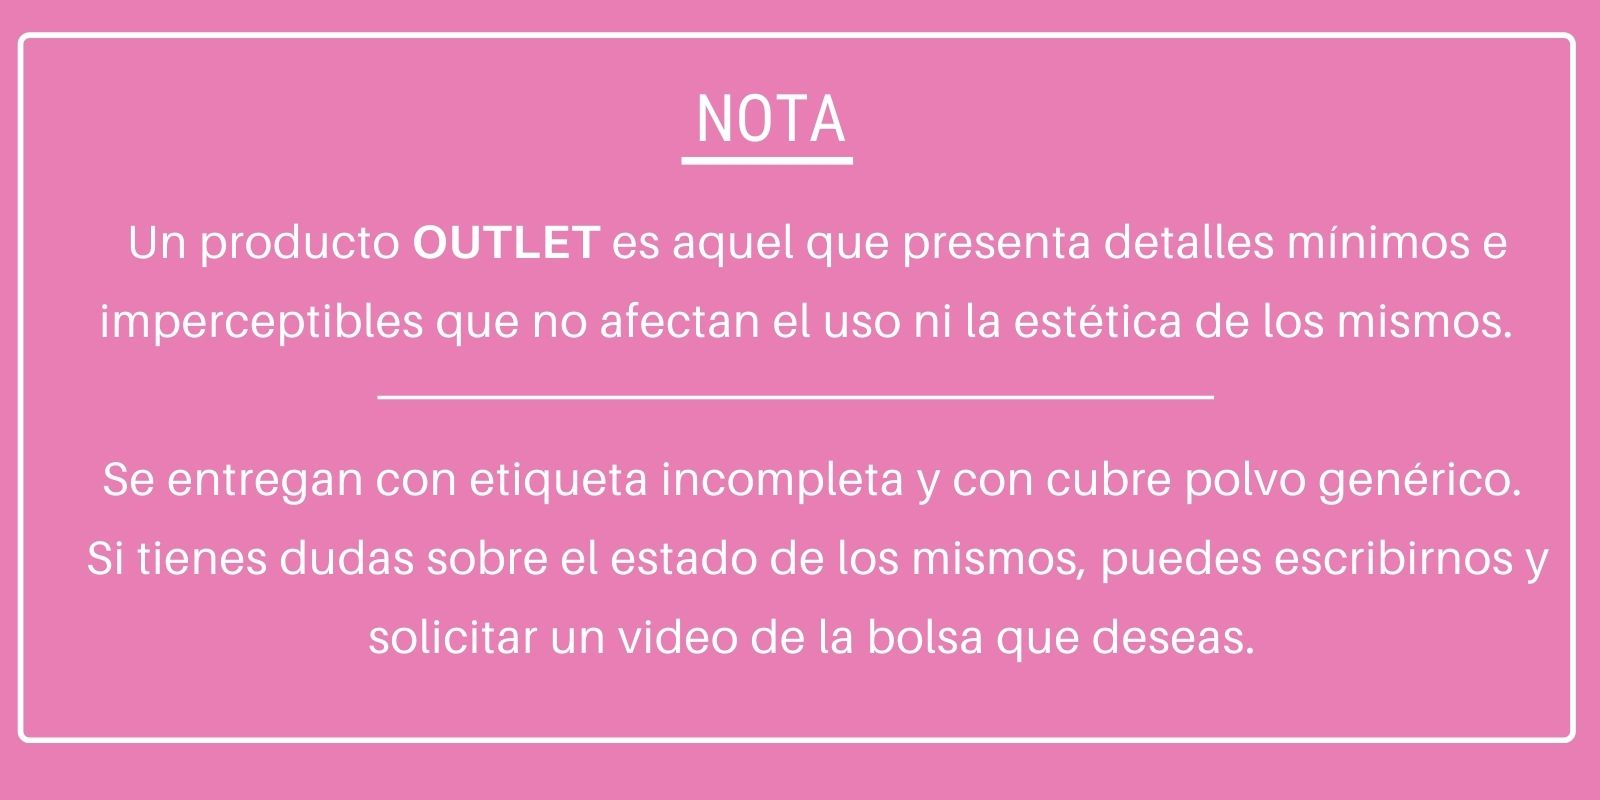 NOTA IMPORTANTE - OUTLET SUNDAR